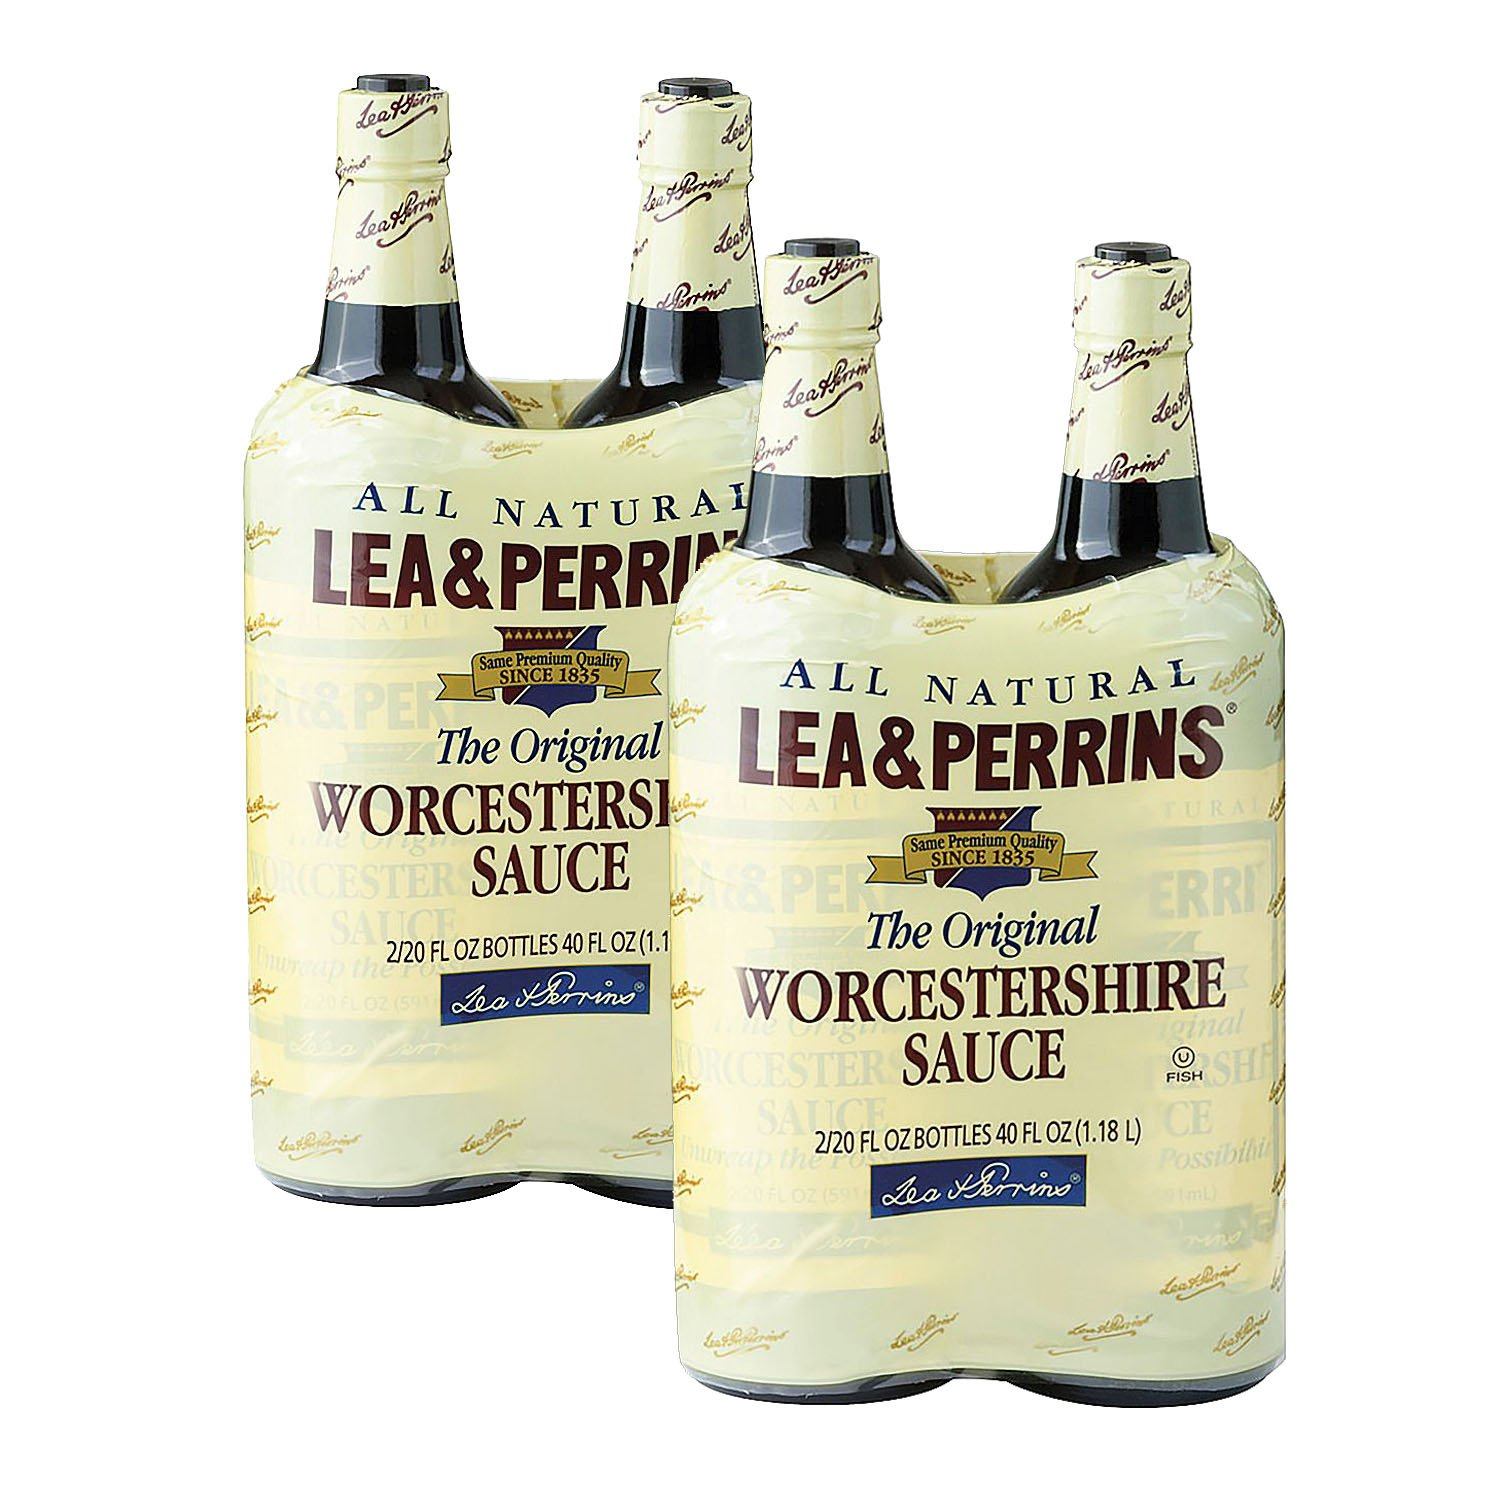 Lea & Perrins Worcestershire Sauce (20 oz. bottle, 2 ct.) (pack of 2)